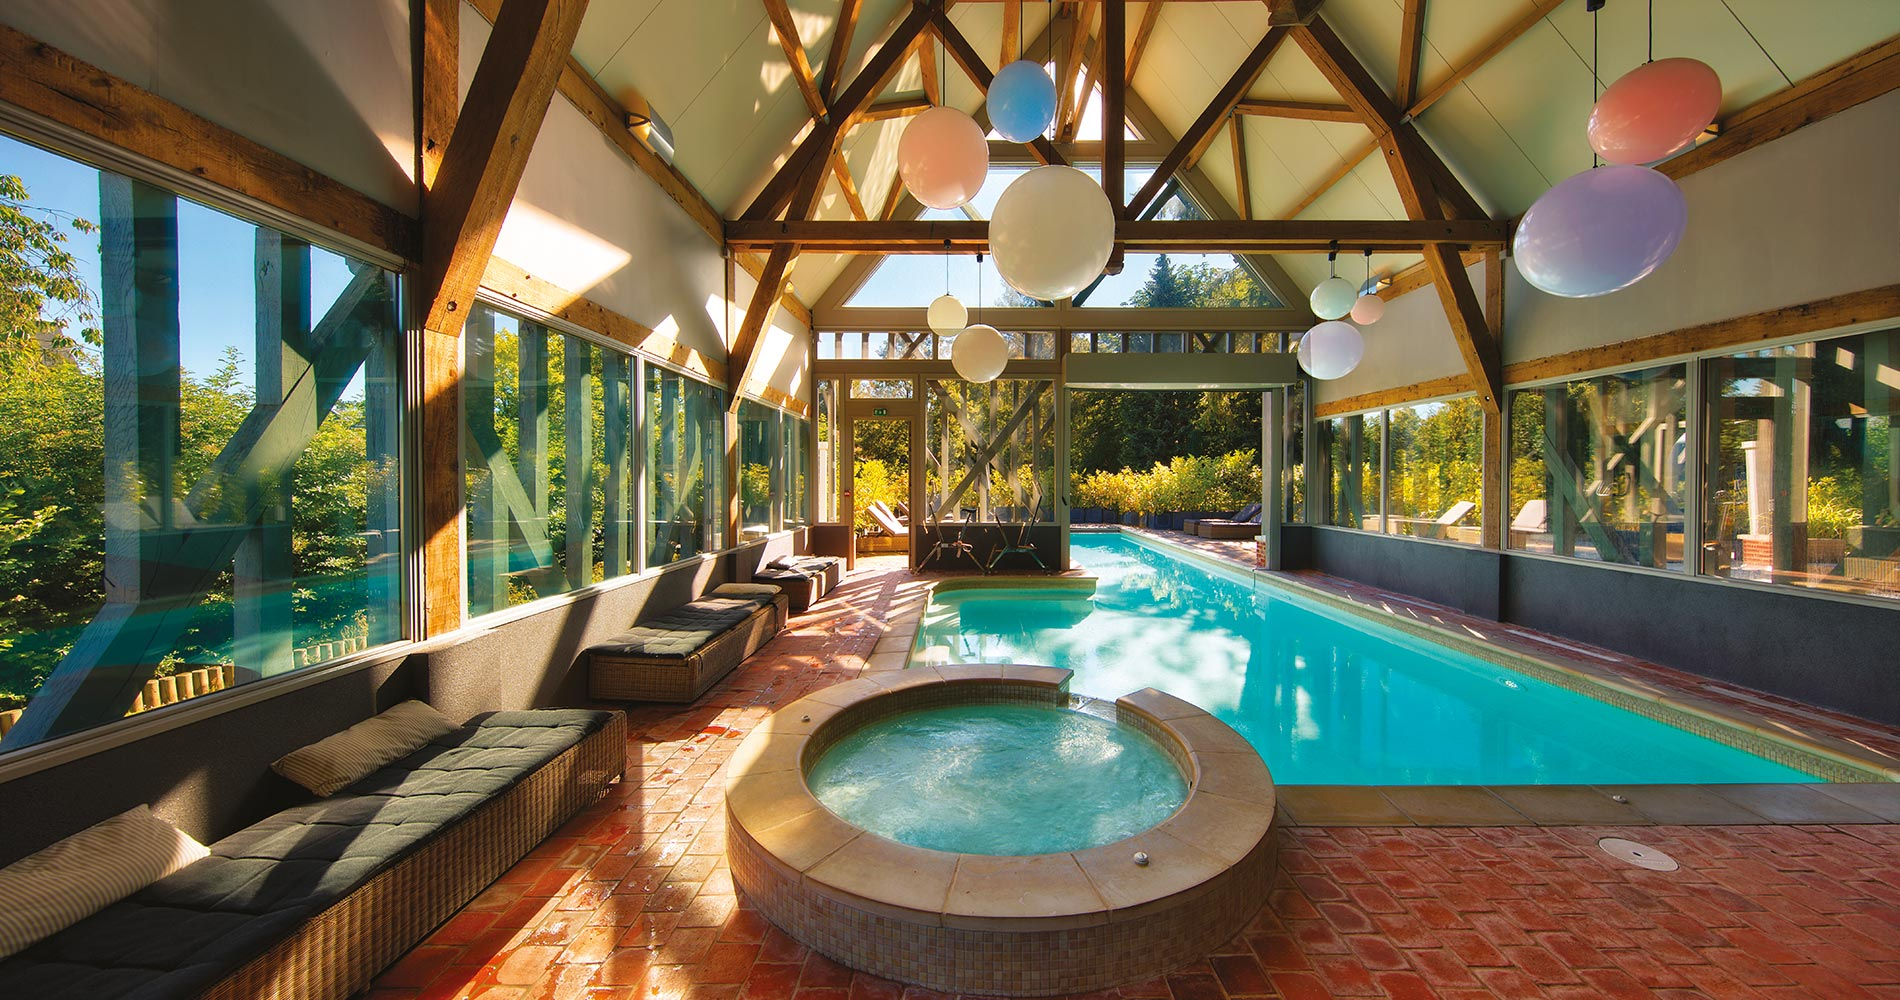 Charming property  La Licorne Hôtel & Spa 4 star Rouen France indoor swimming pool